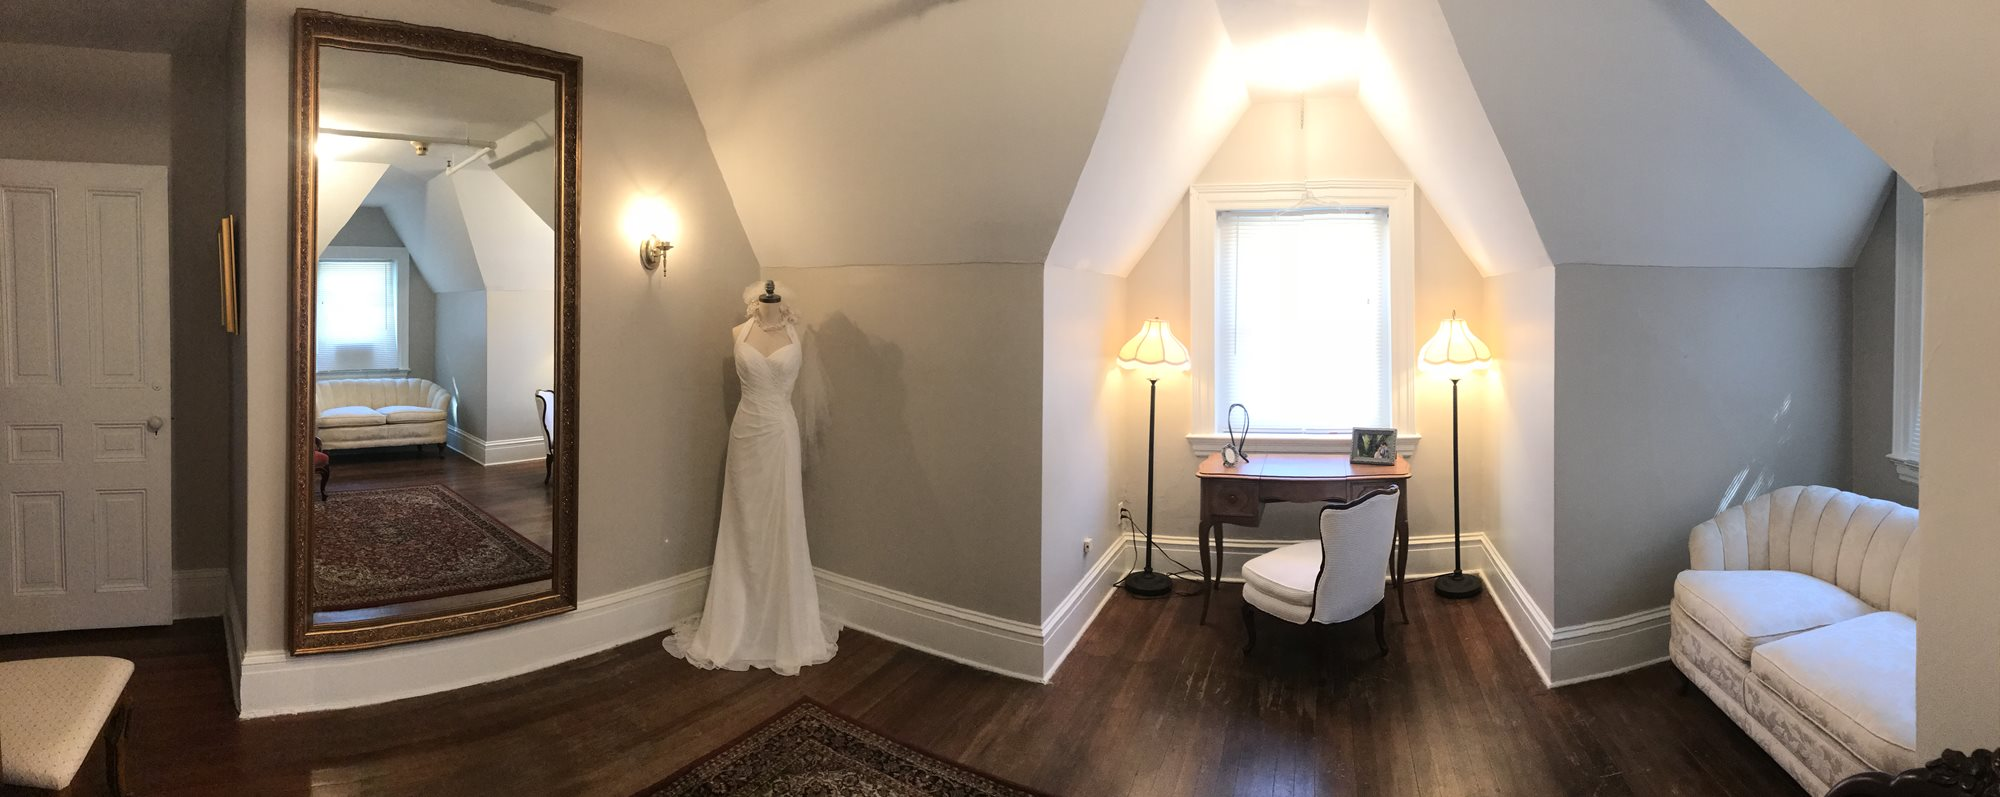 Pano Bridal Suite